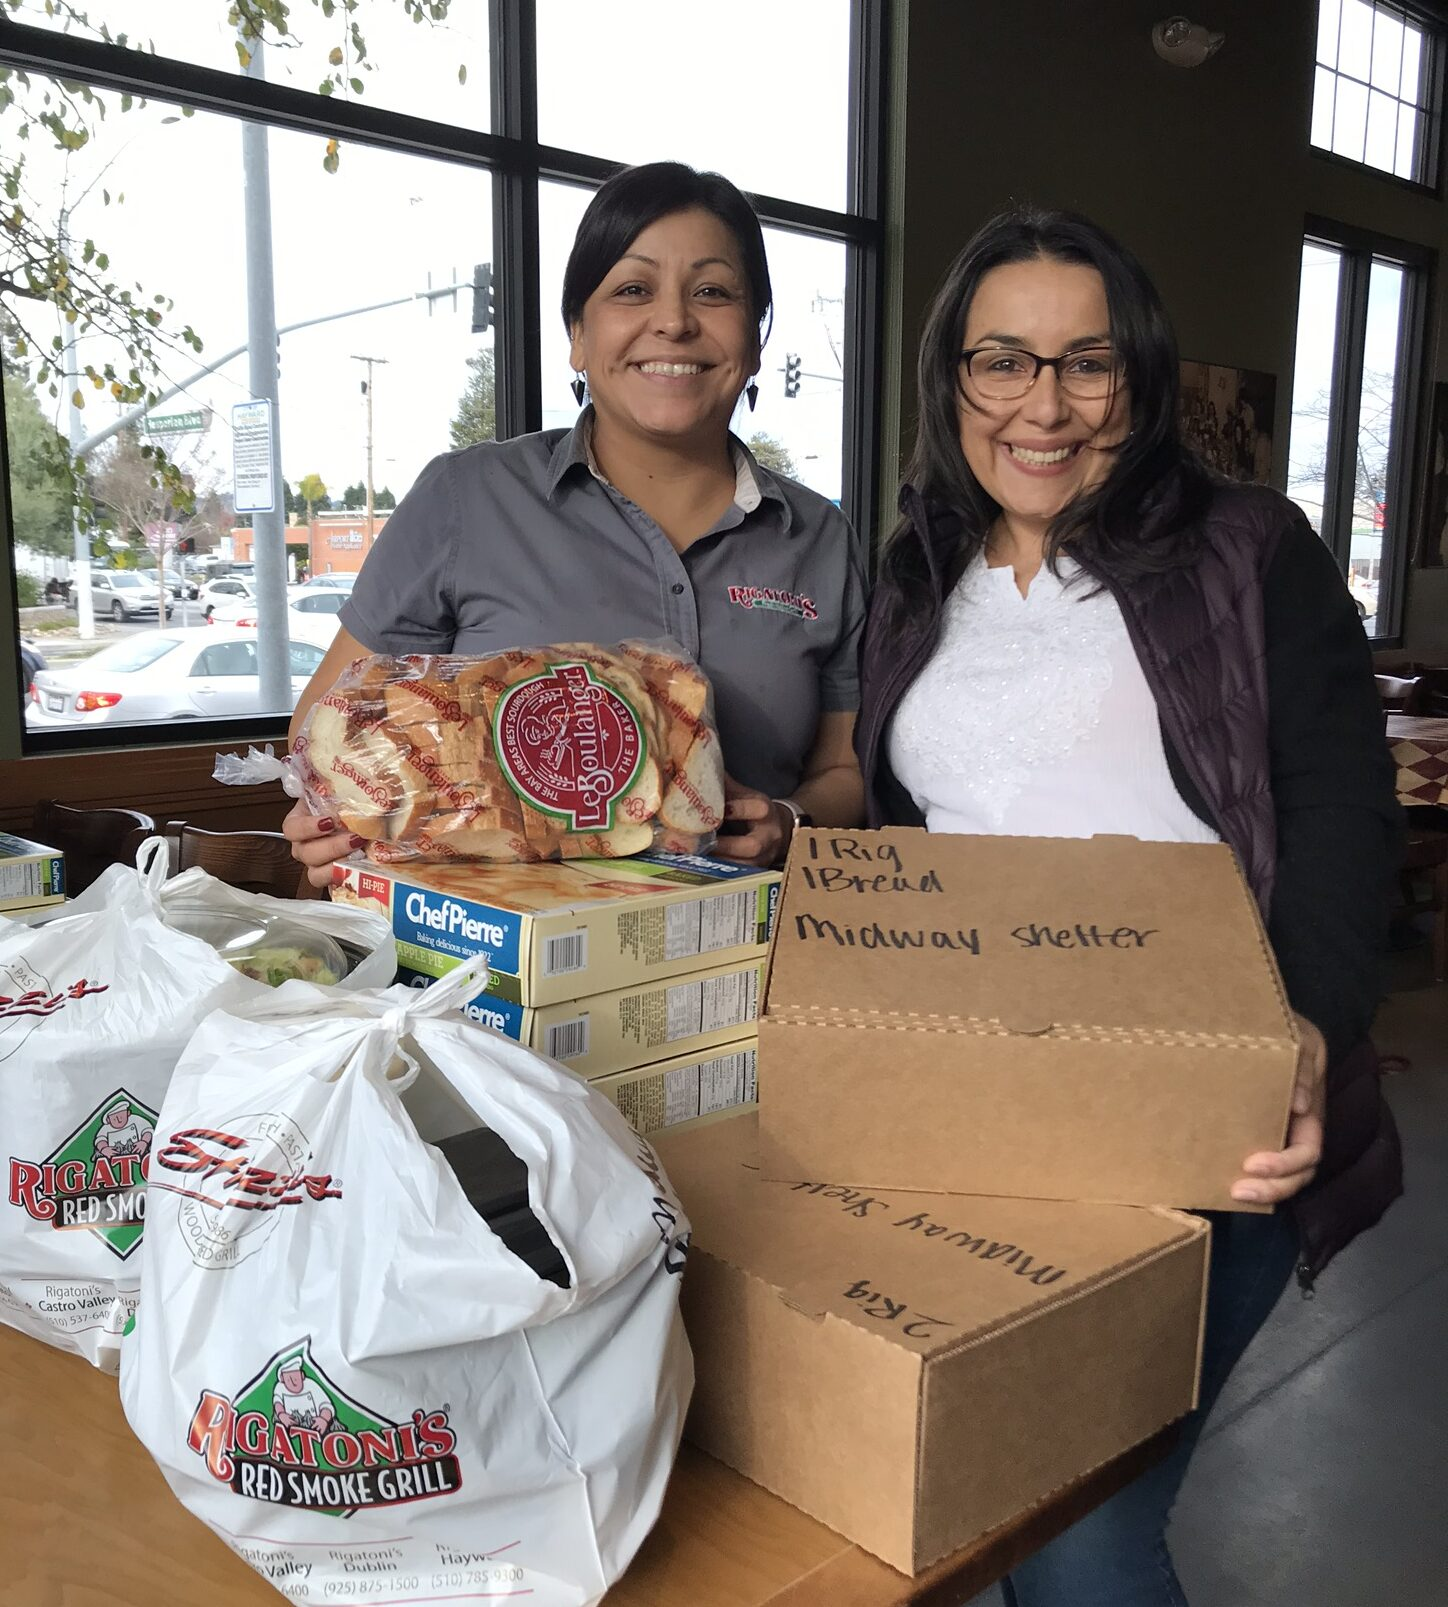 Rigatoni manager presents Building Futures with meals